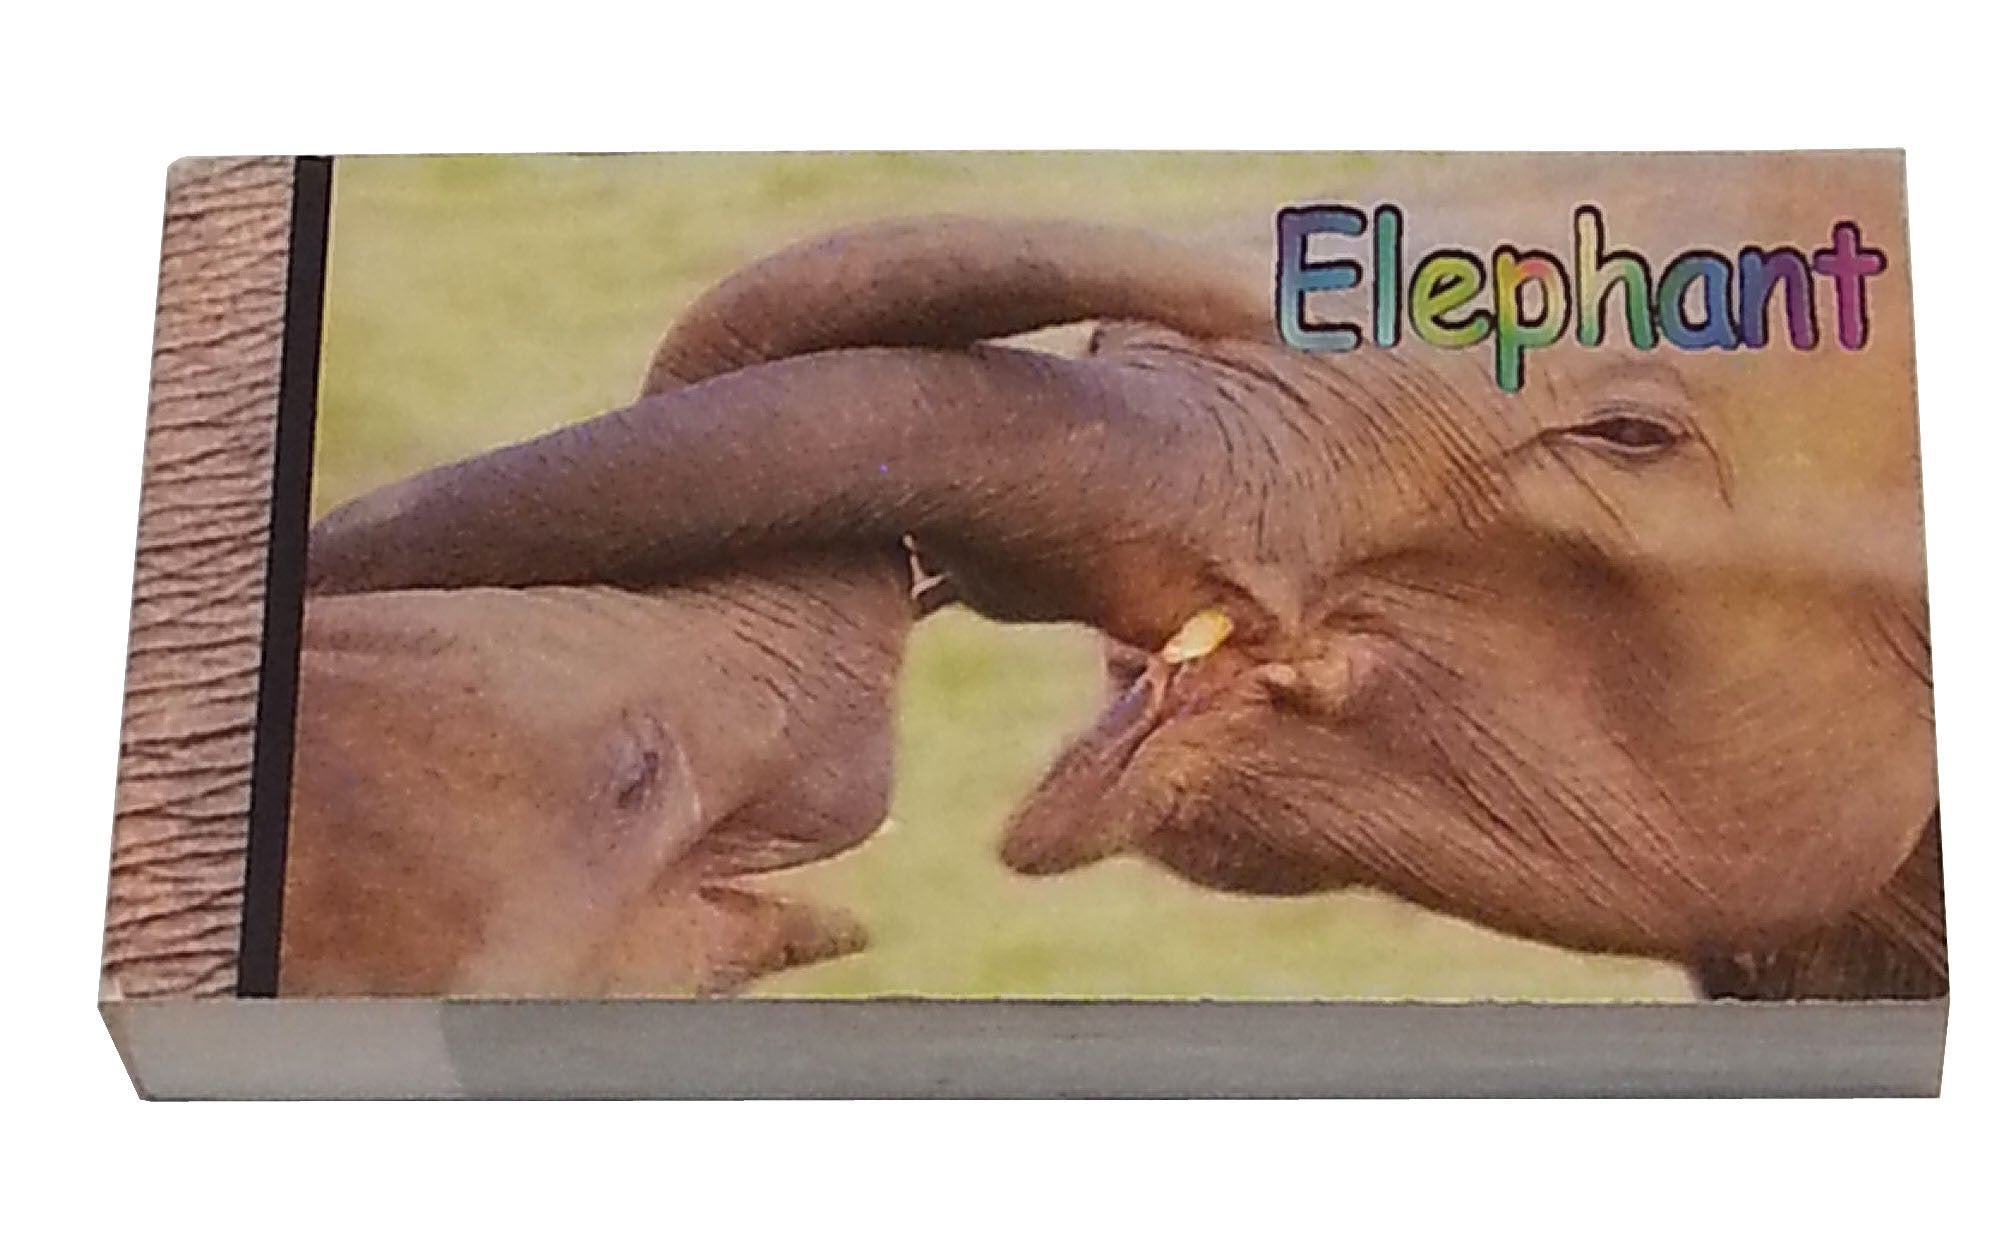 Elephant Flipbook - Off The Wall Toys and Gifts